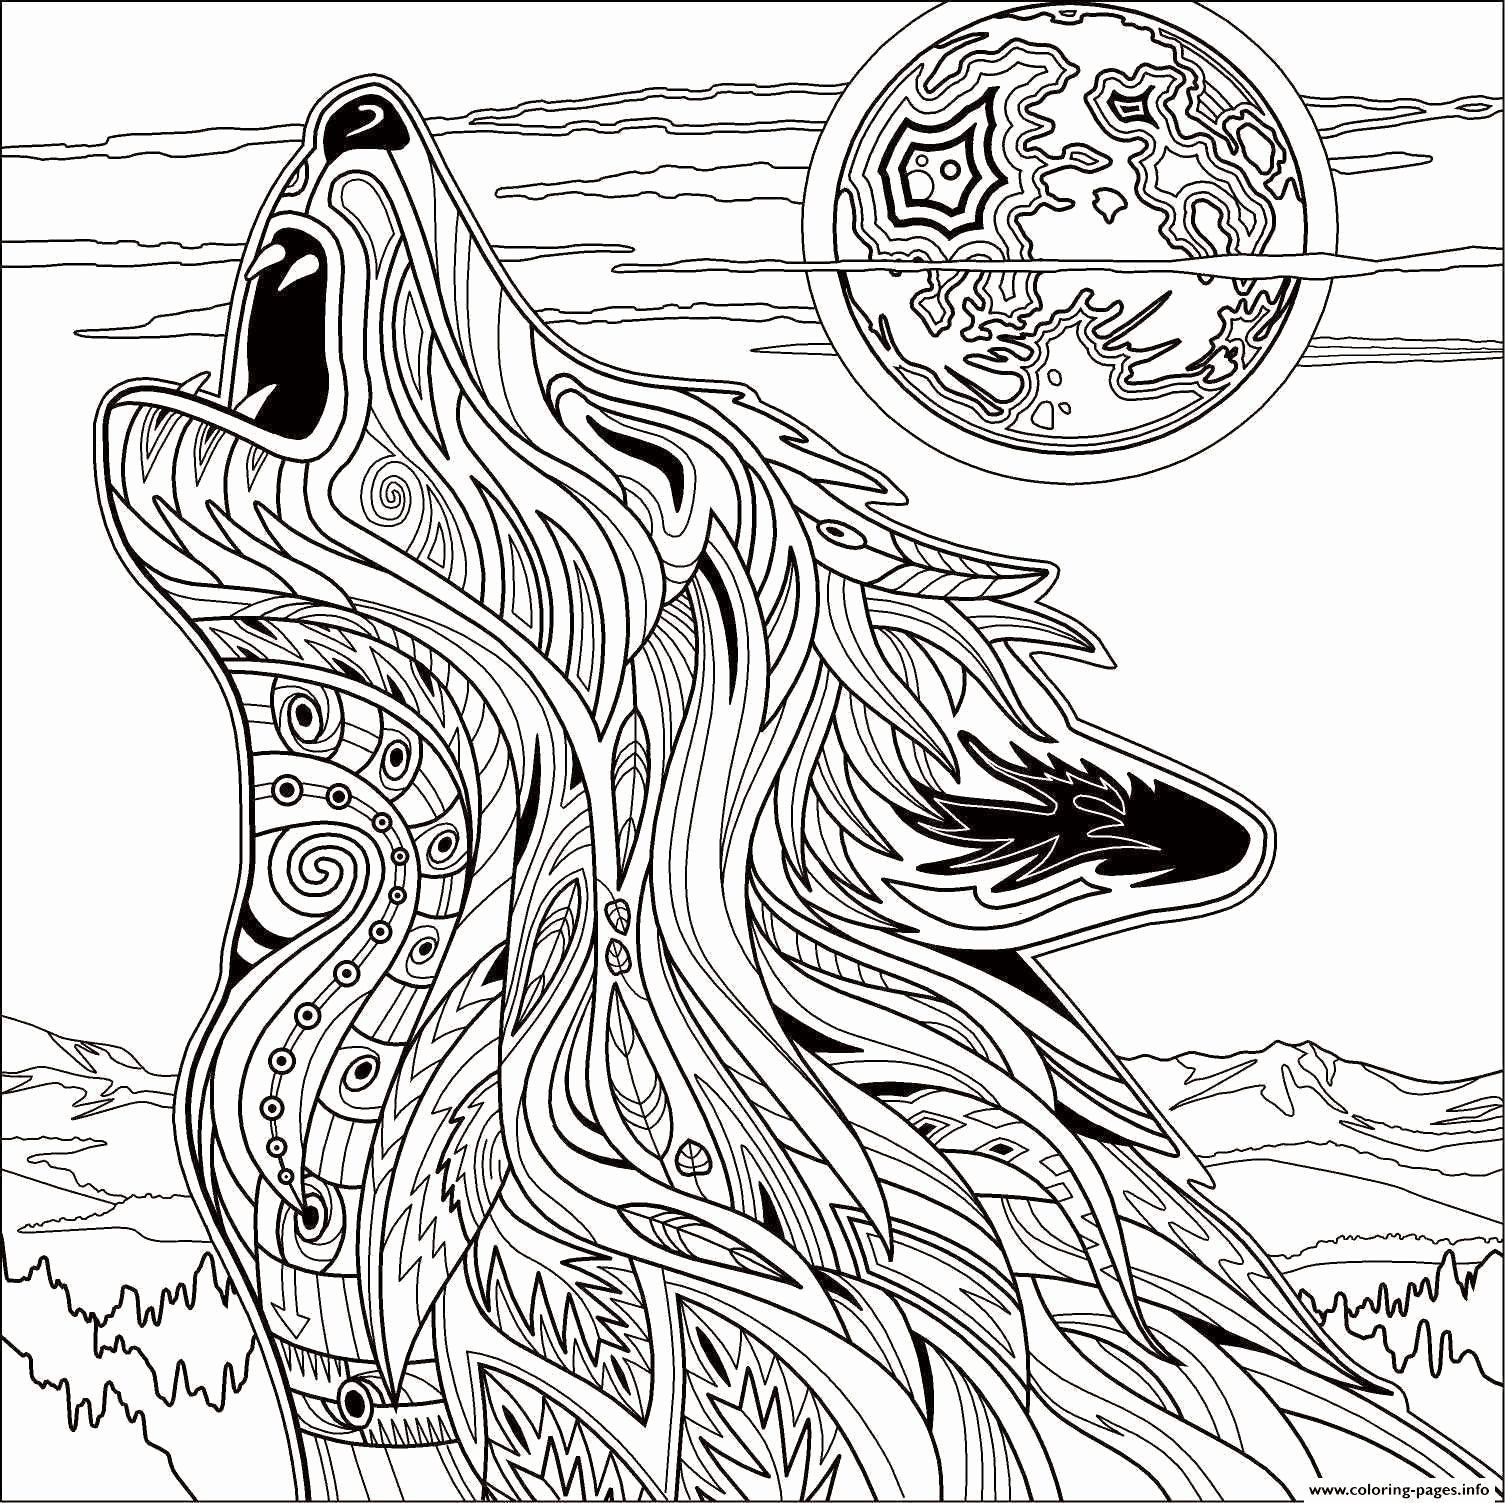 Animal Coloring Pages Hard Beautiful Coloring Pages For Adults Difficult Animals Gambar